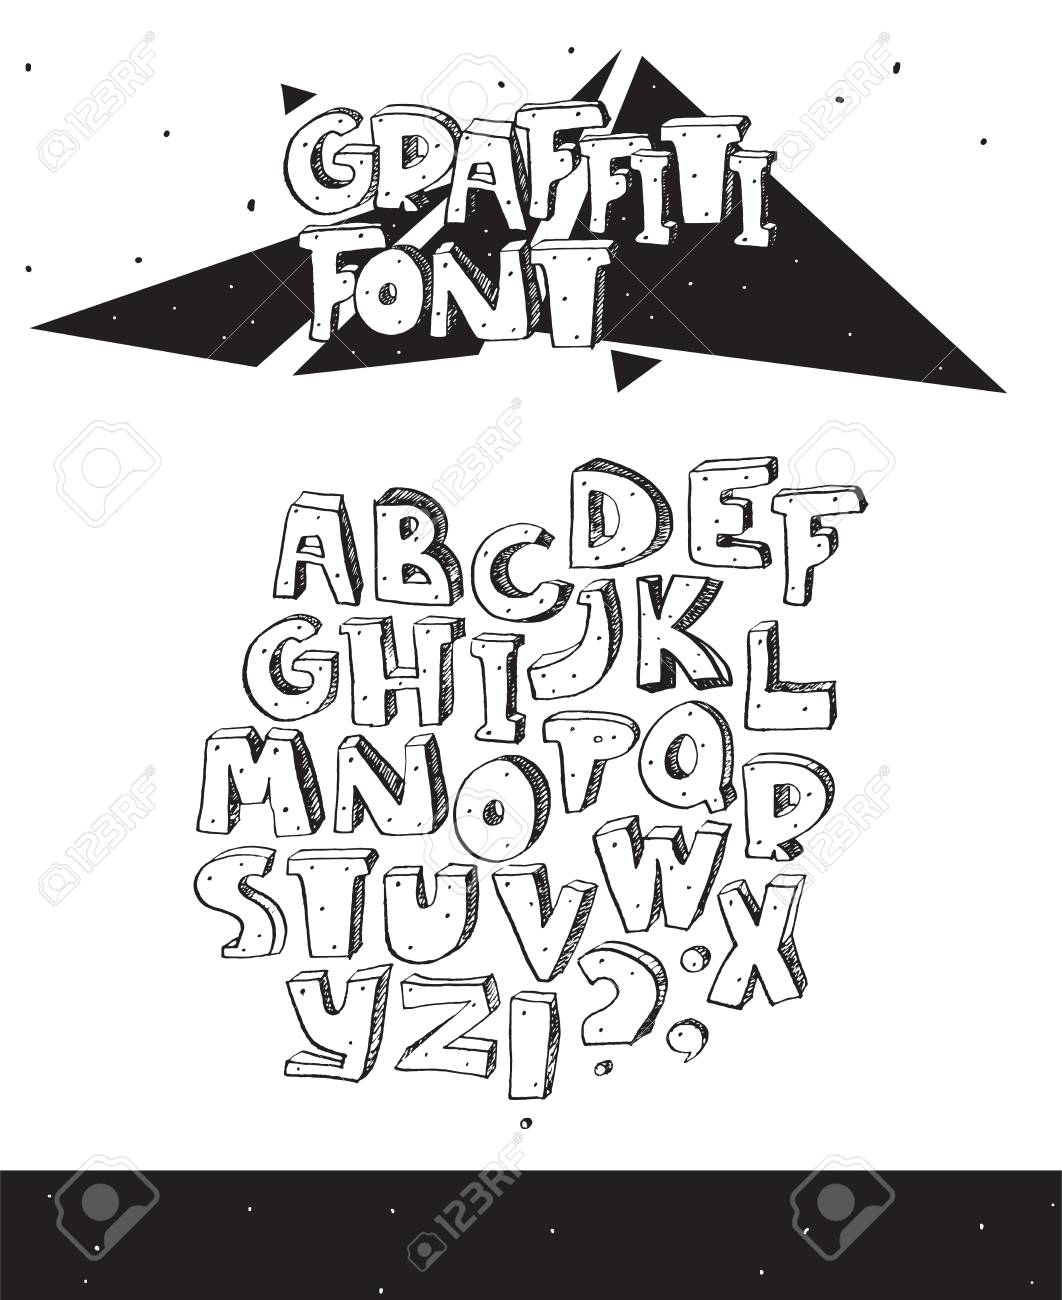 Vector vector hand drawn illustration with black and white imperfect graffiti font isolated on white 3d letters sequence from a to z with ink hatch and